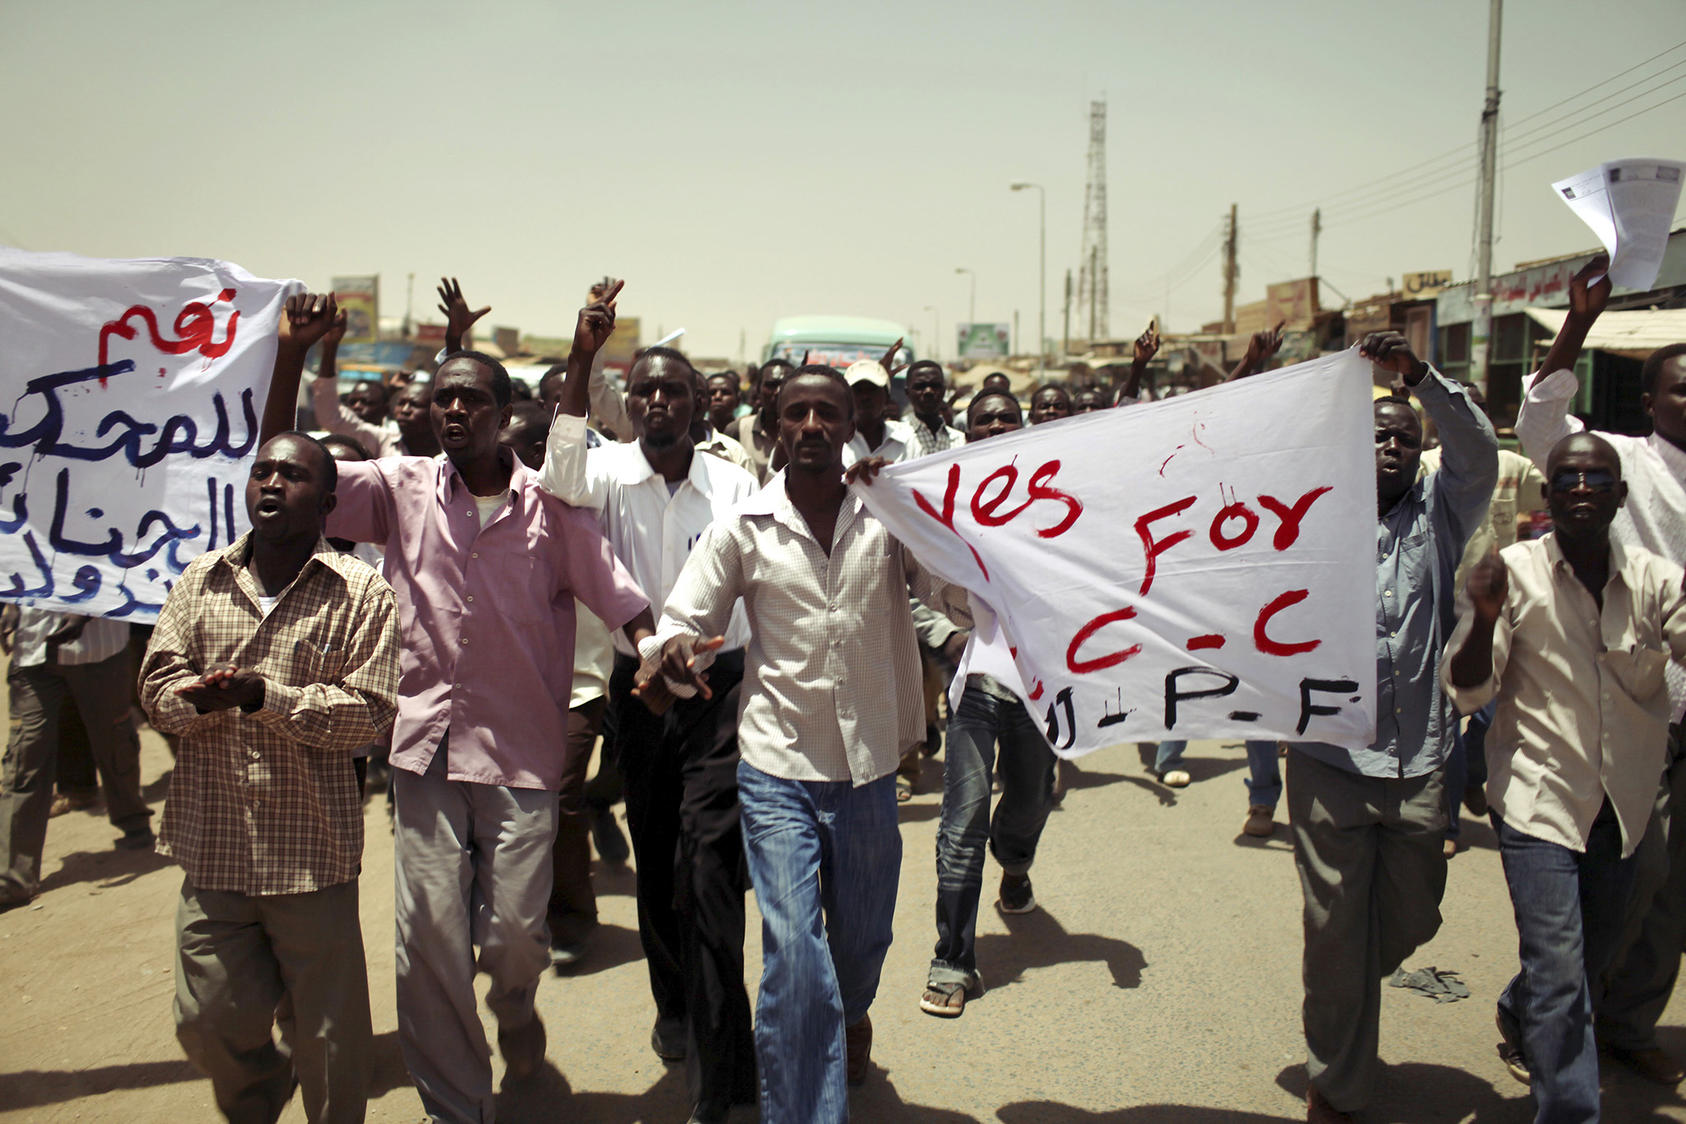 Darfurian men protest against dictator Omar al-Bashir in the streets of Khartoum, Sudan, April 11, 2010. (Jehad Nga/The New York Times).